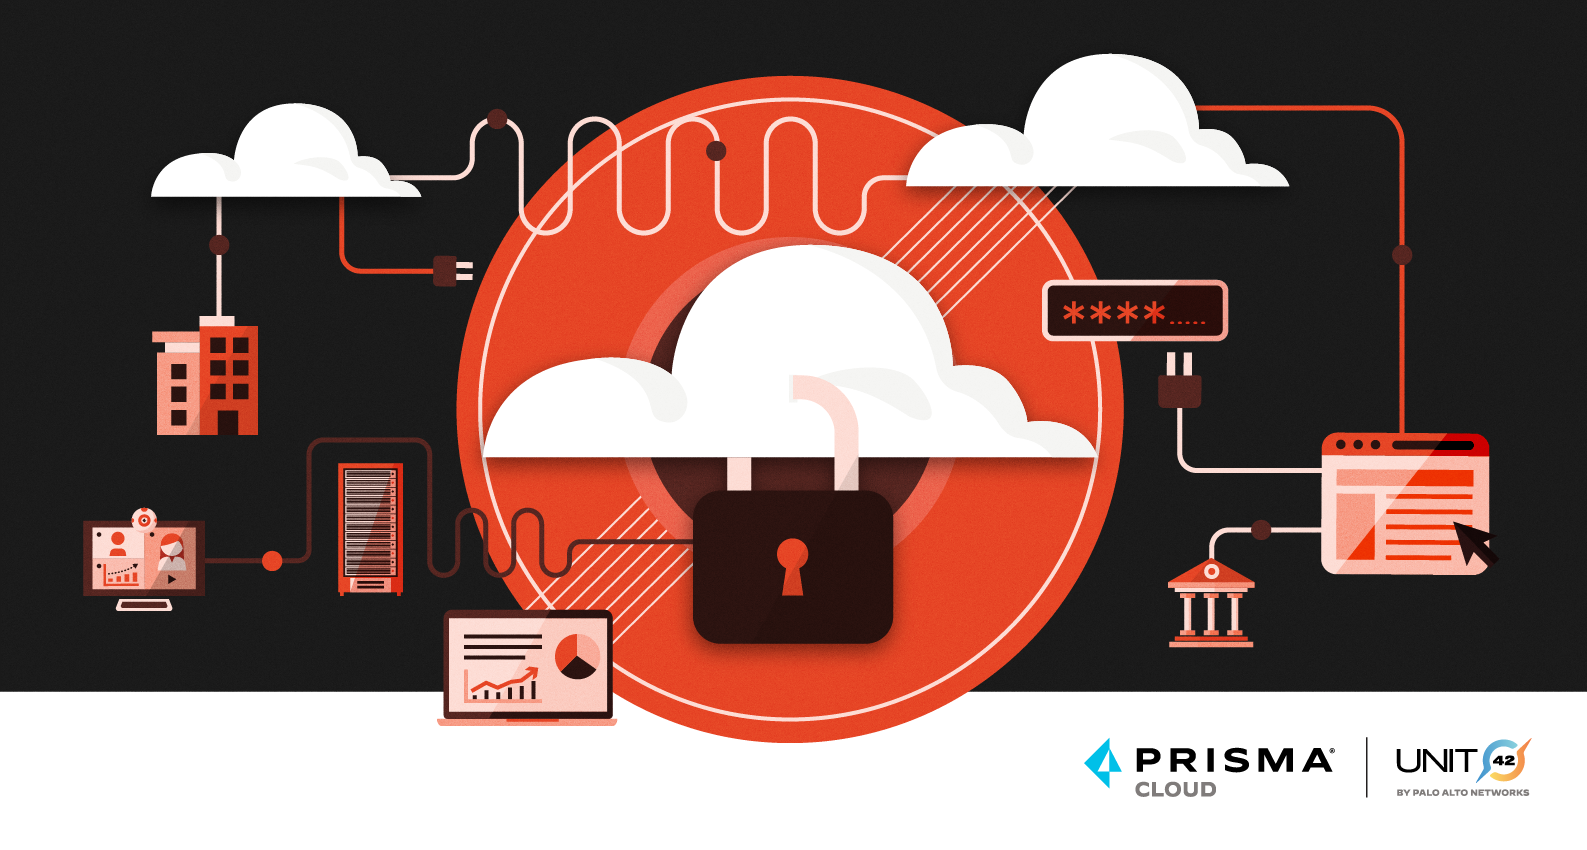 Cover image for the Unit 42 Cloud Threat Report, 1H 2021, which covers trends in issues related to cloud security.